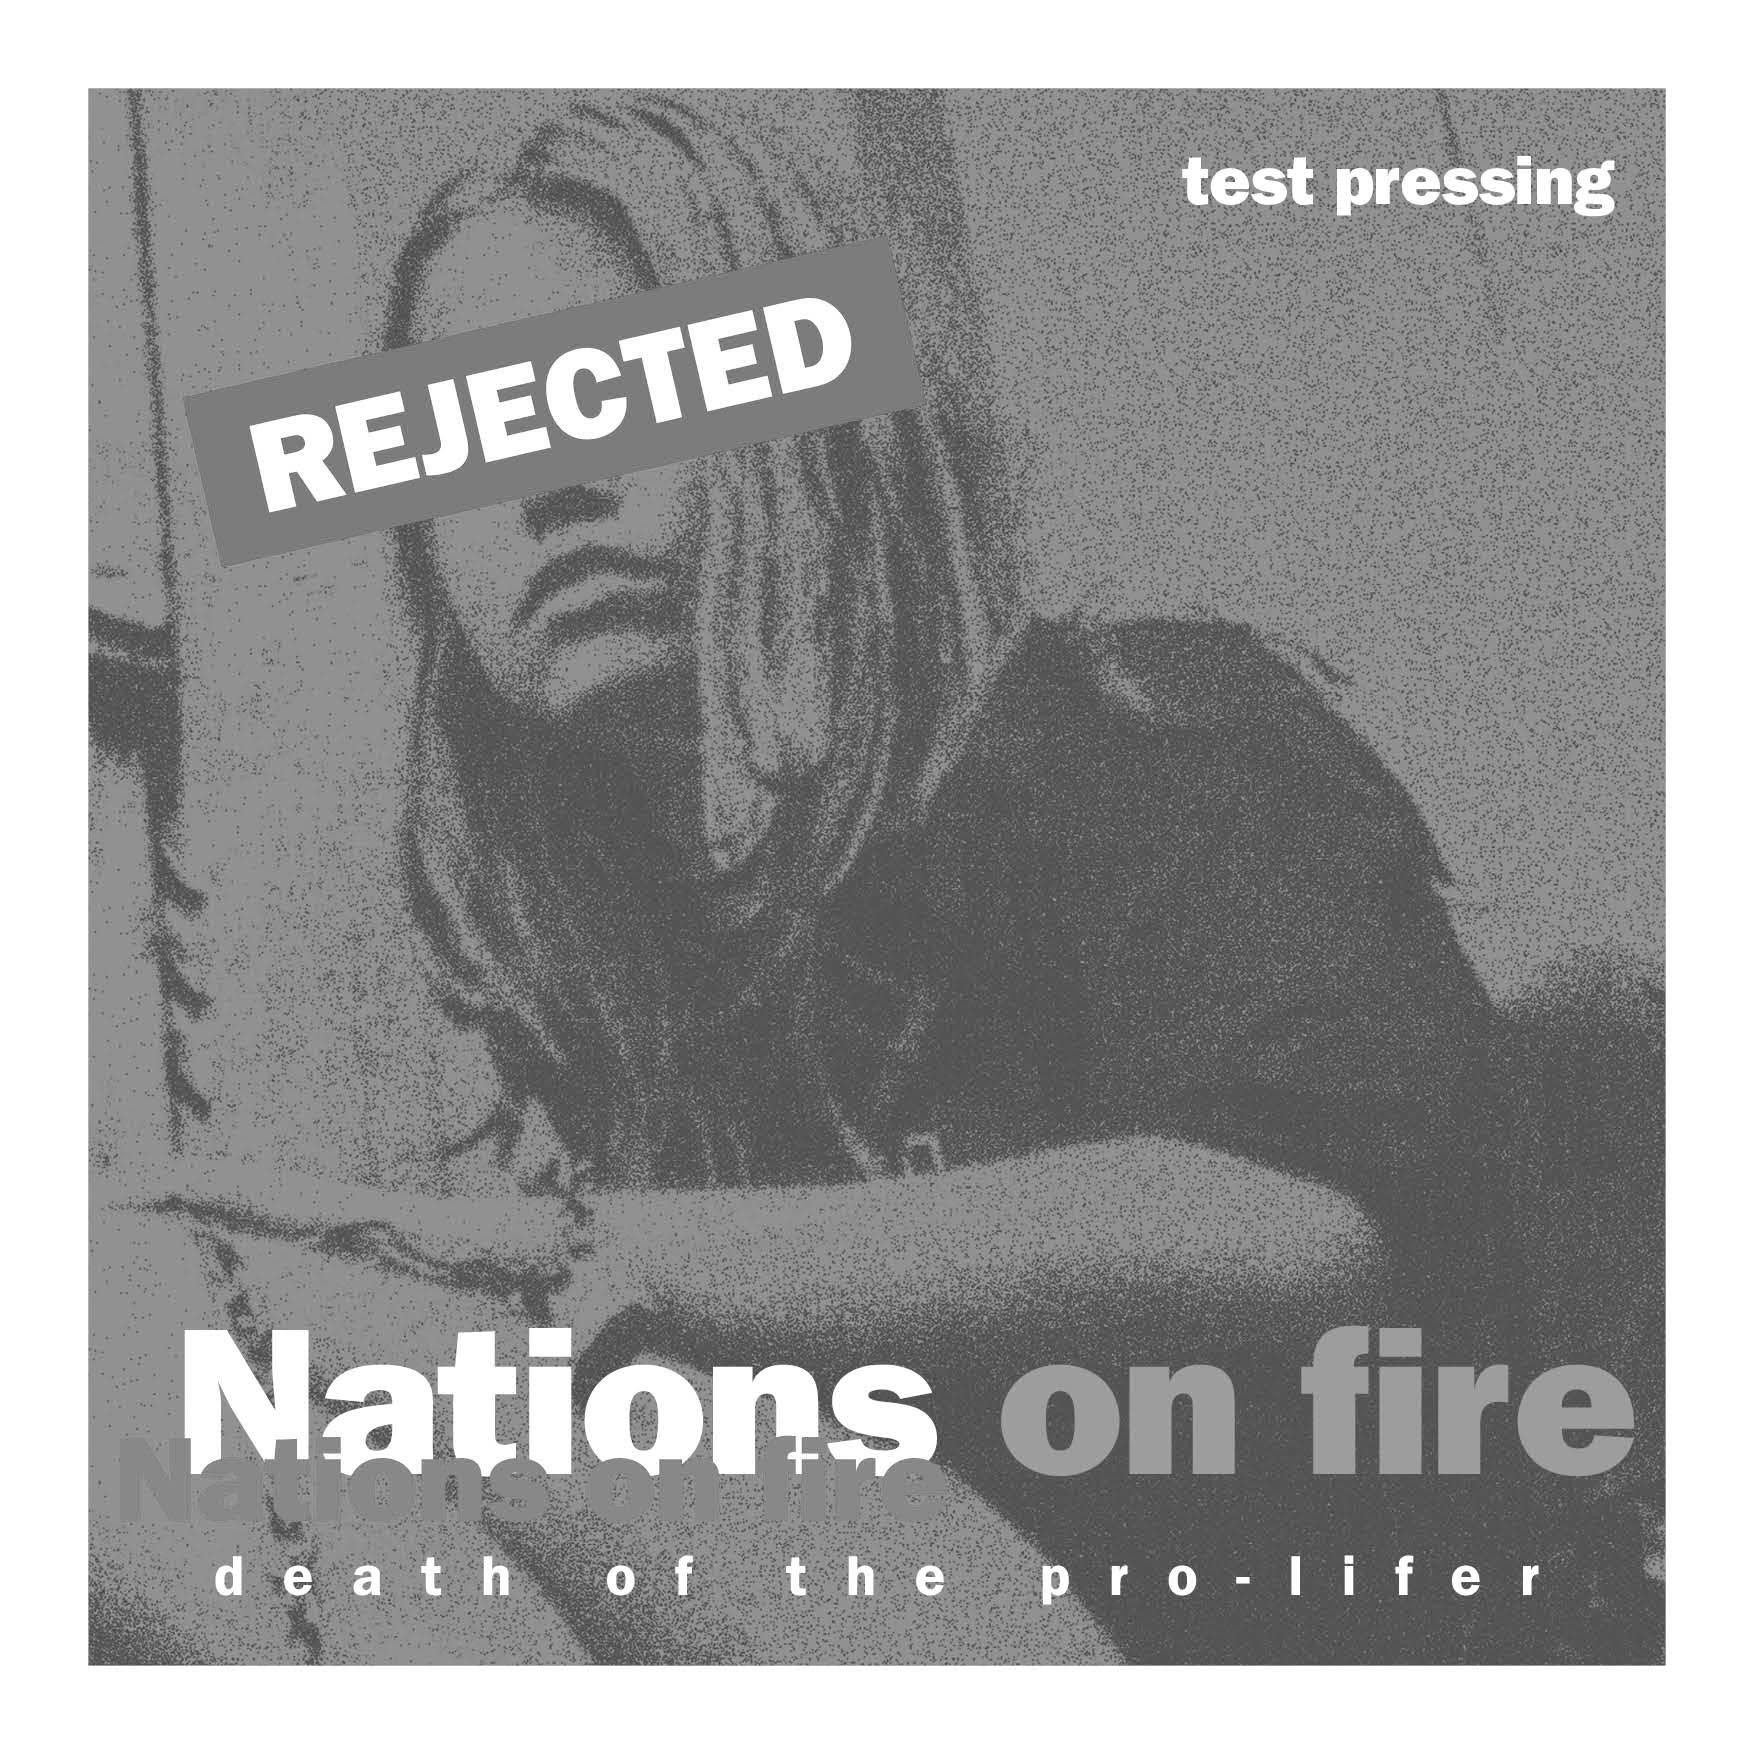 "NATIONS ON FIRE ""Death of..."" LP  REJECTED TEST P"